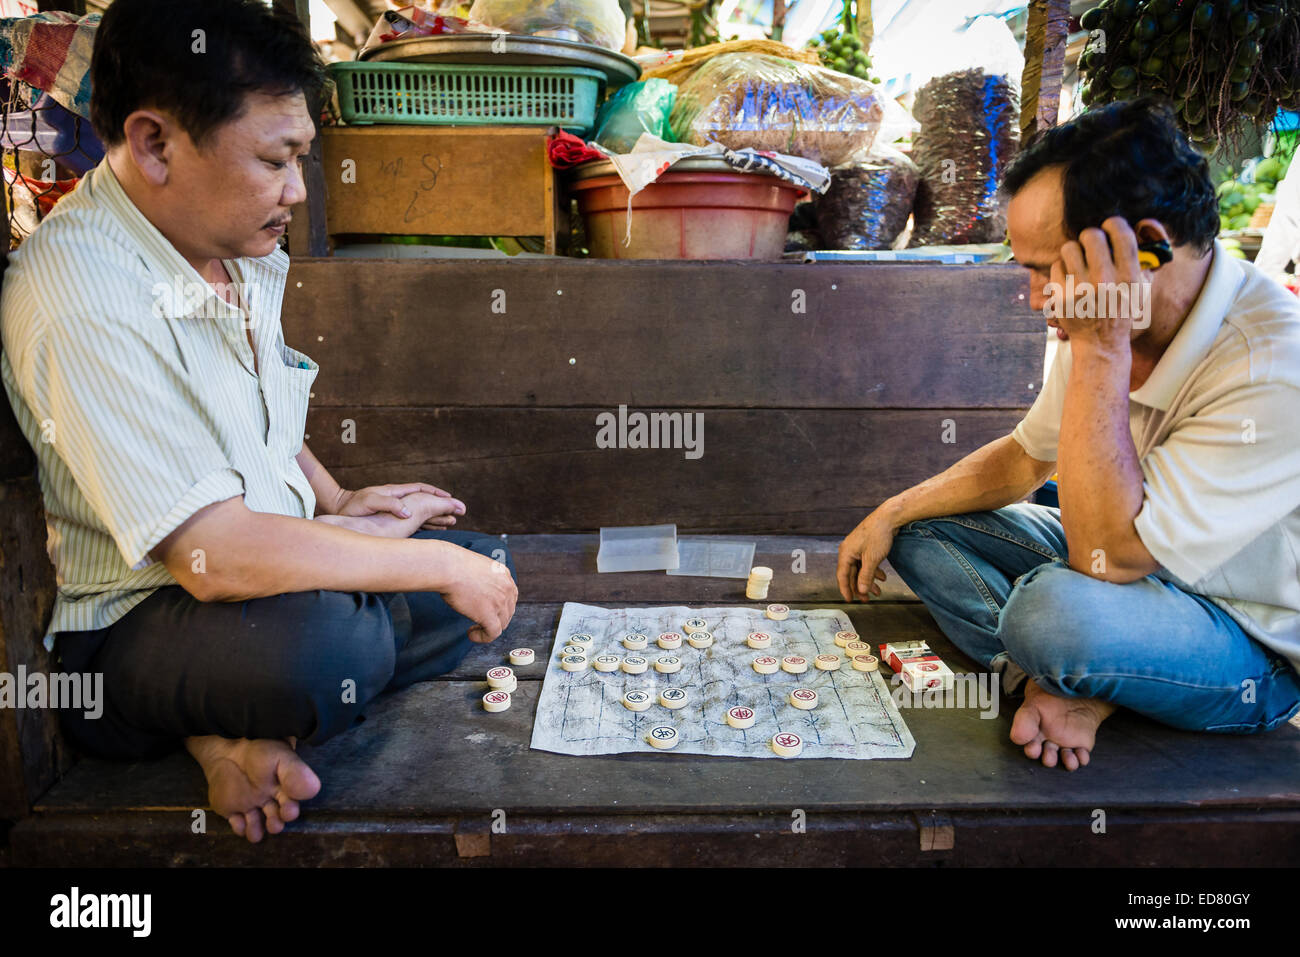 Men playing a game of Chinese chess in an alleyway at a market in Saigon - Stock Image